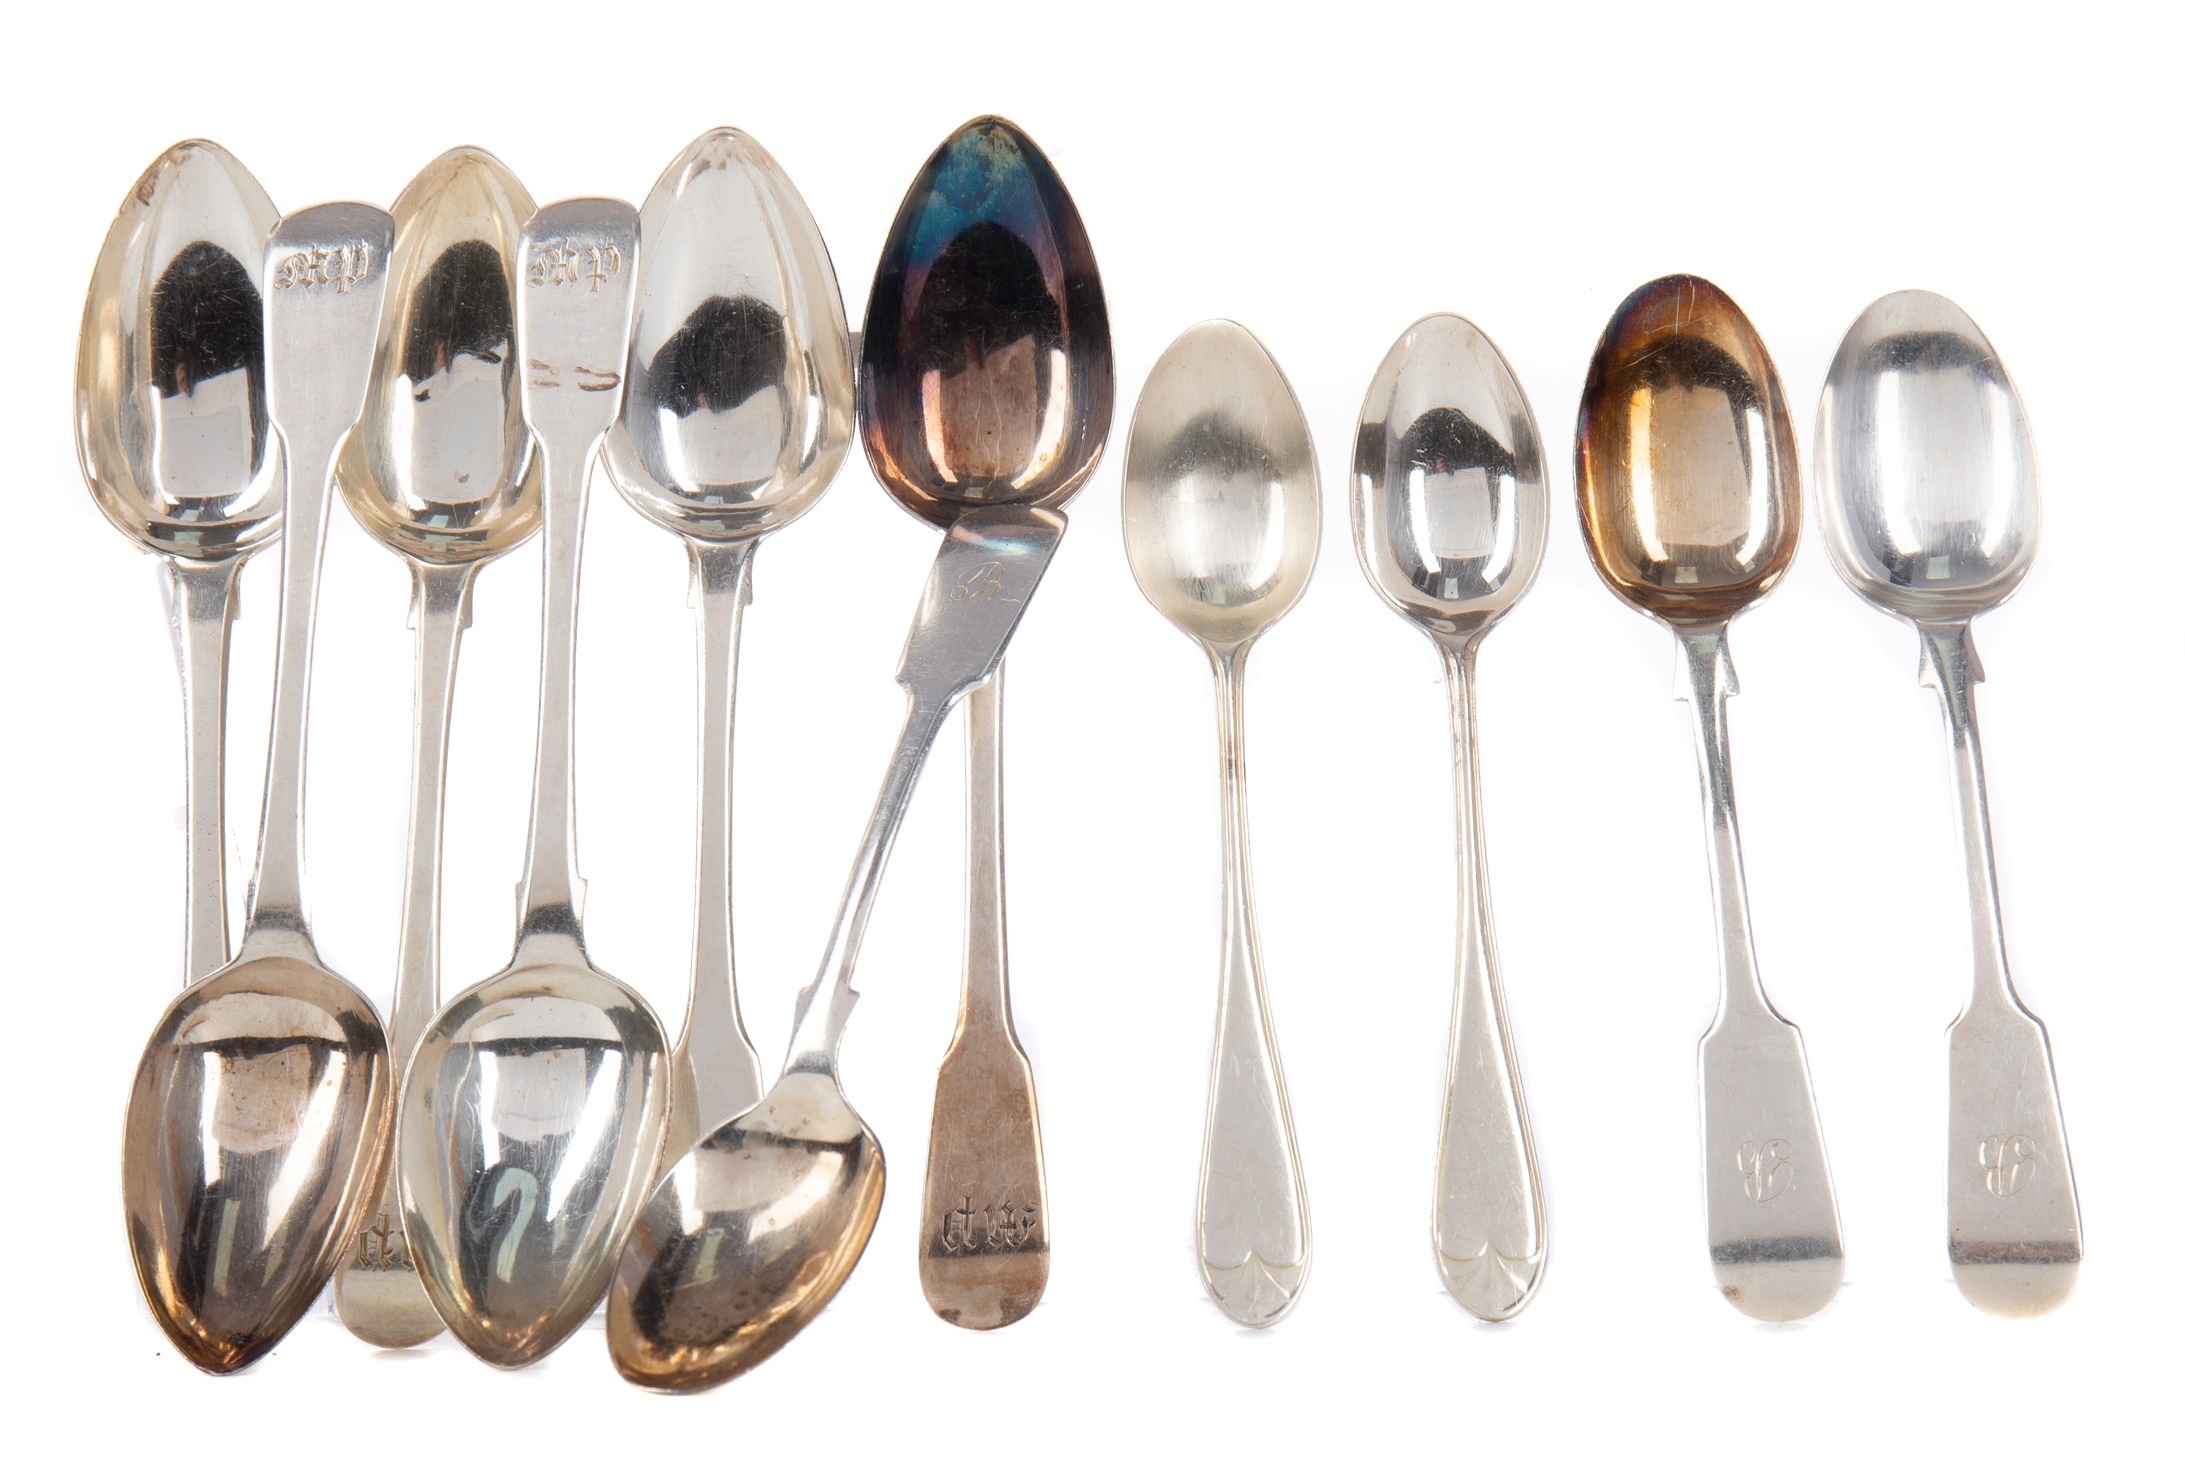 A SET OF SIX GEORGE III TEASPOONS ALONG WITH OTHER SILVER SPOONS